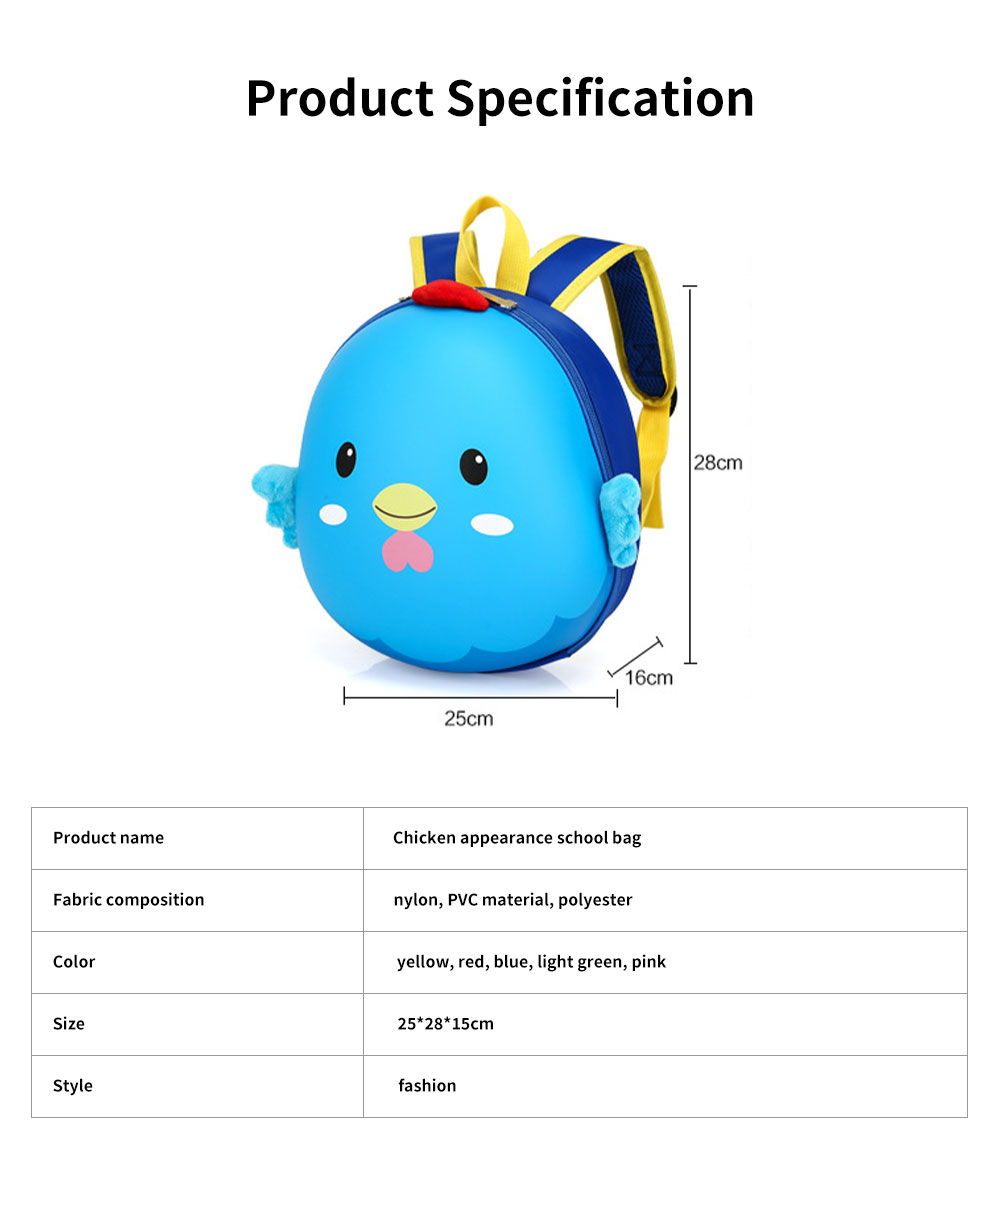 Chicken Appearance School Bag for Student Breathable Shoulder Strap Quality Buckles Metal Zipper Comfortable Handle Backpack 6